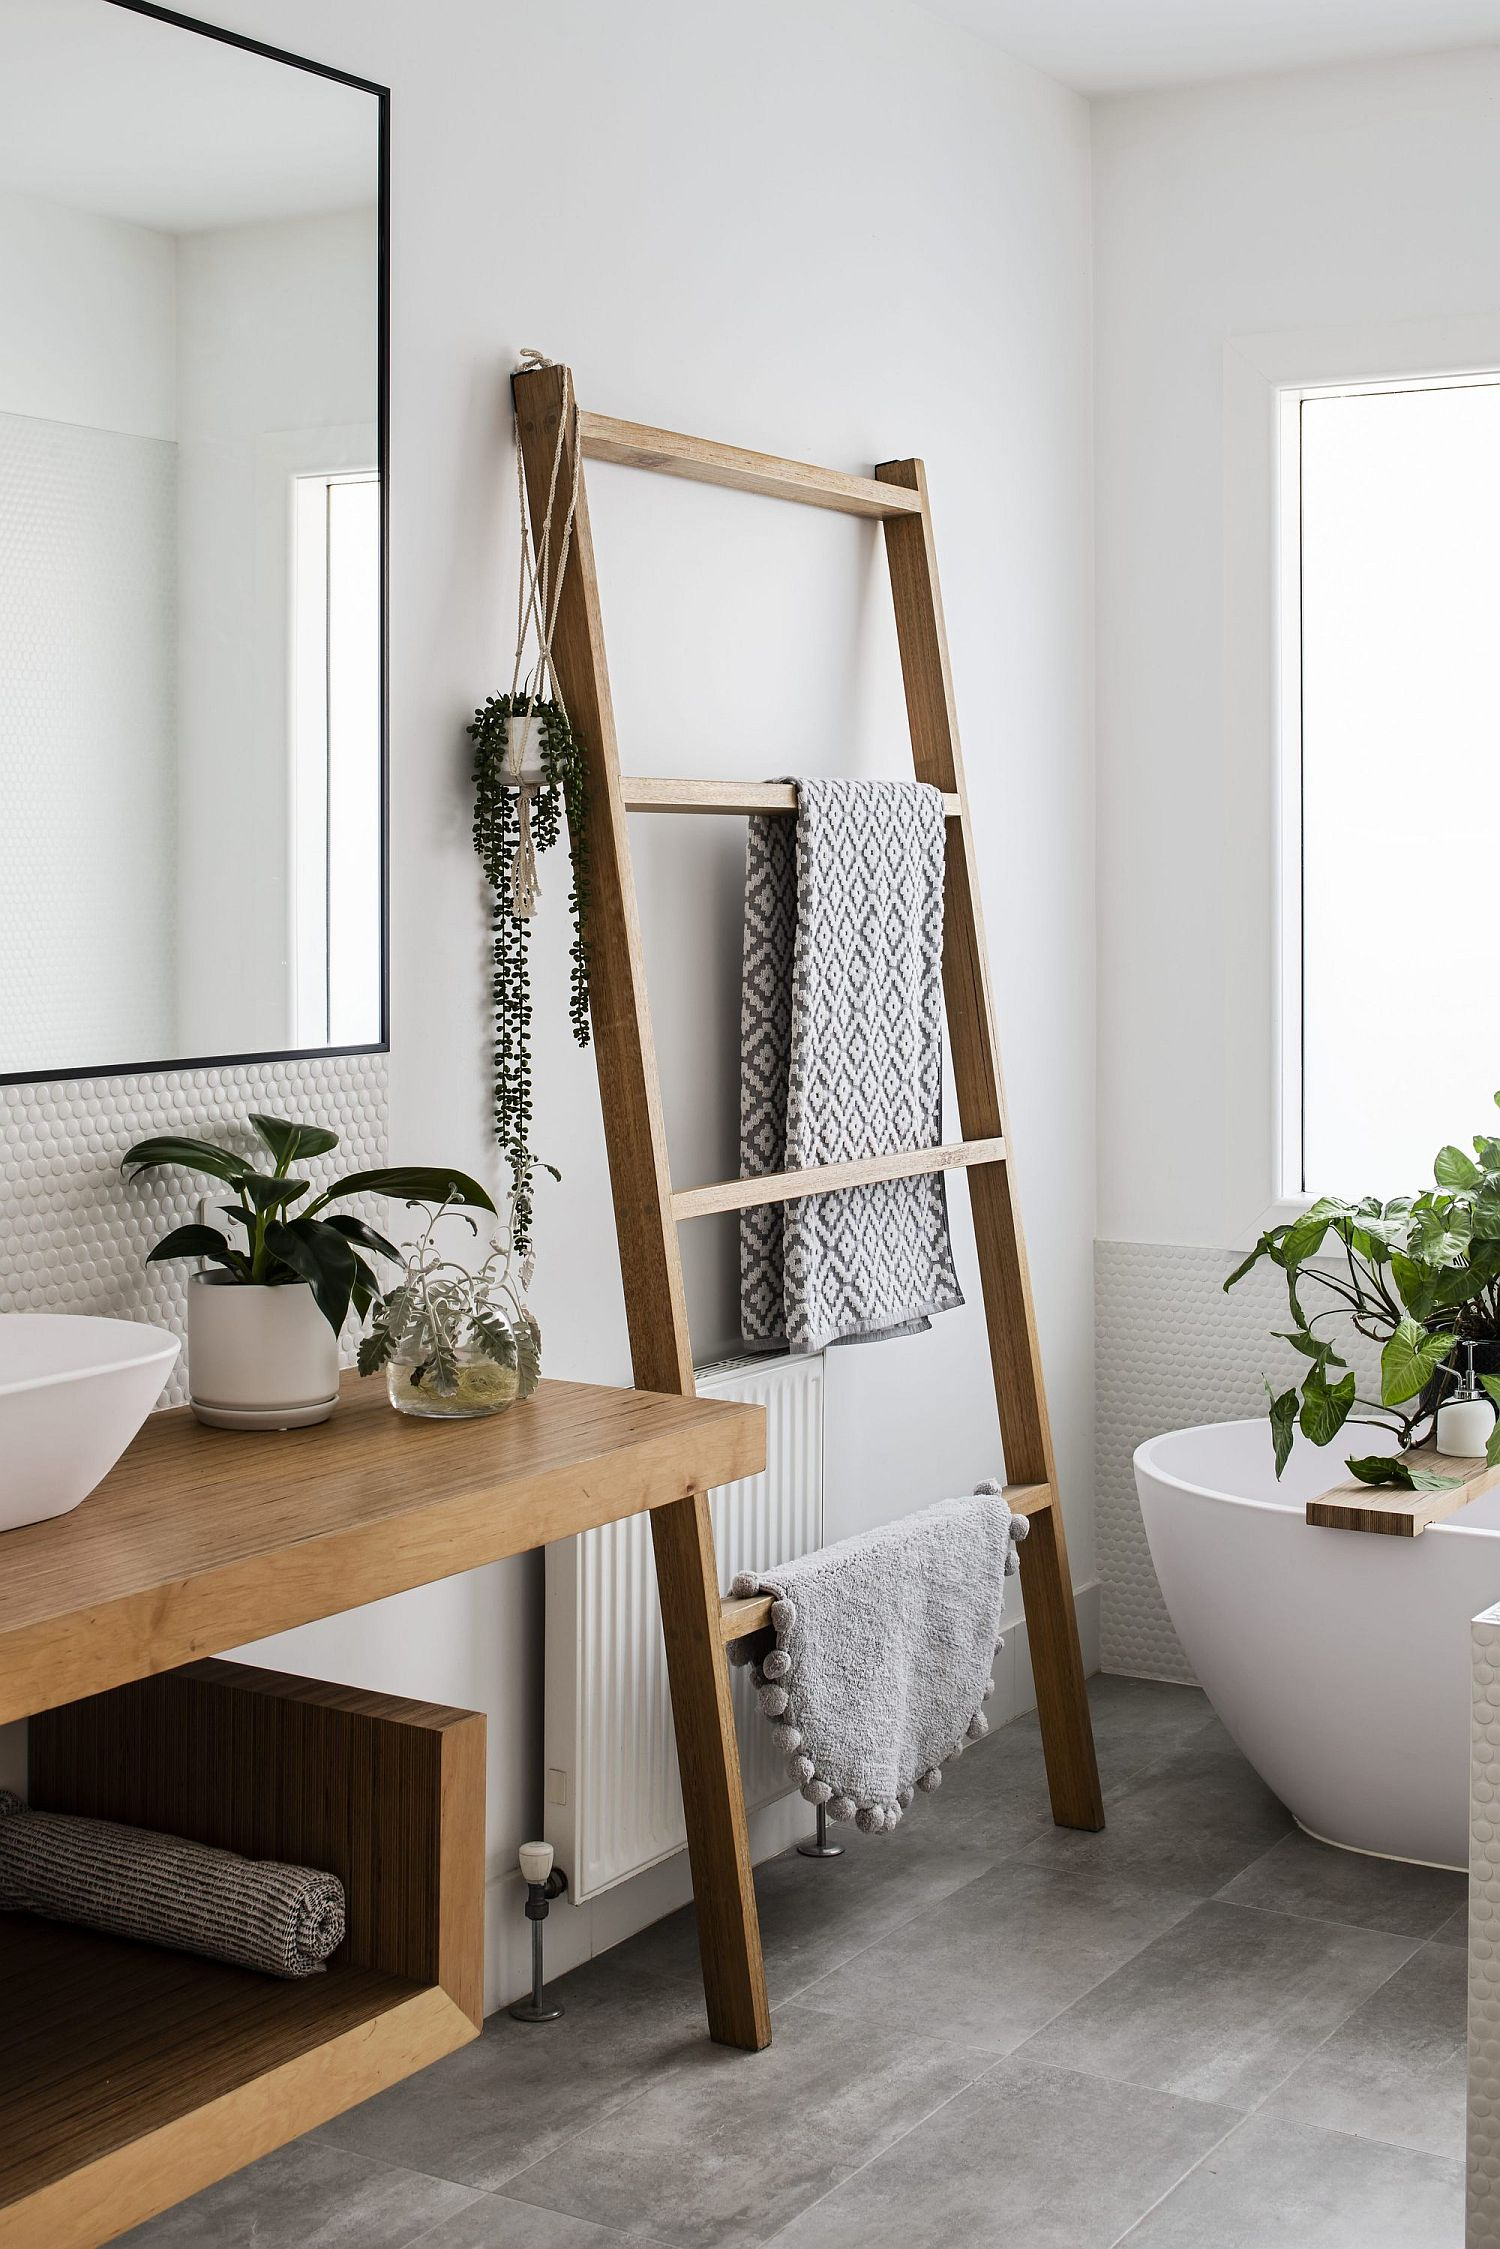 Two new contemporary bathrooms added to the house with white and gray taking over